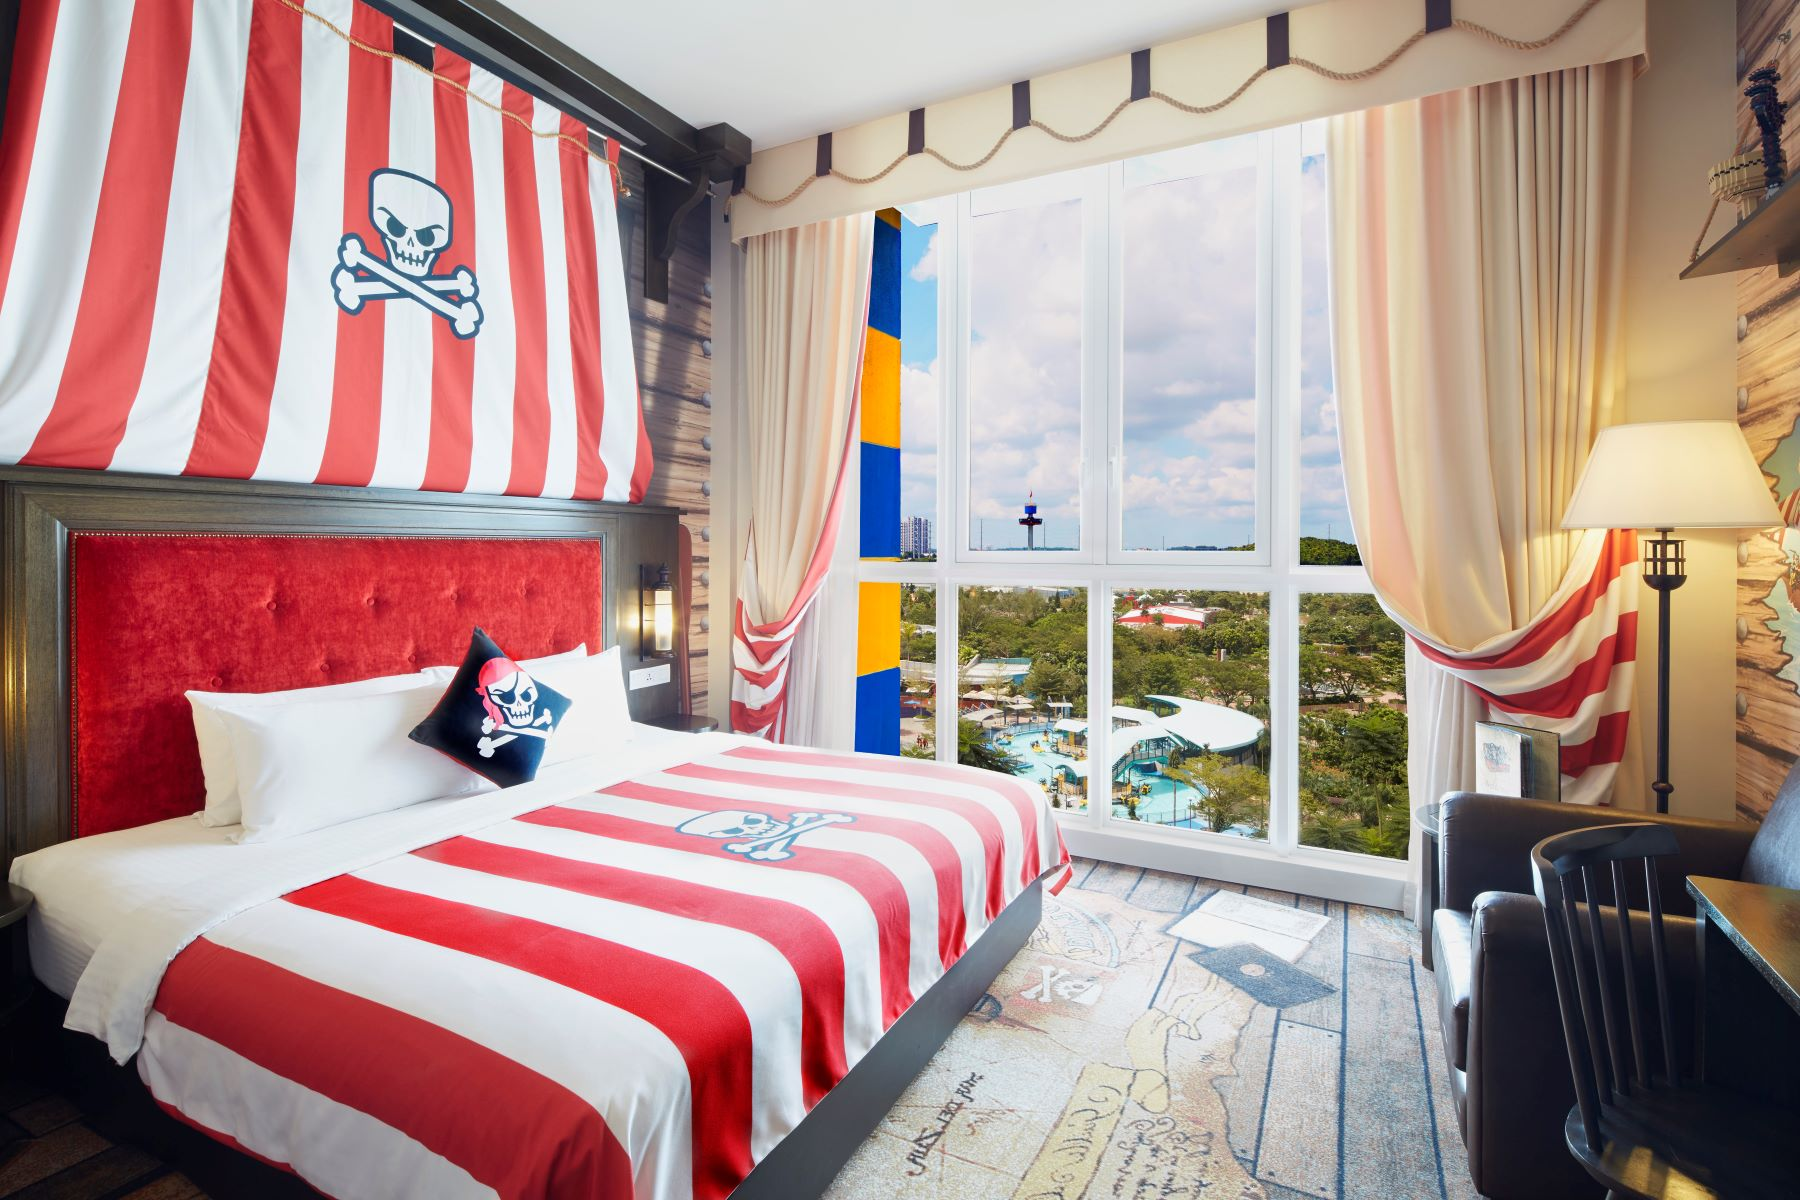 Premium Themed Room (Pirate)